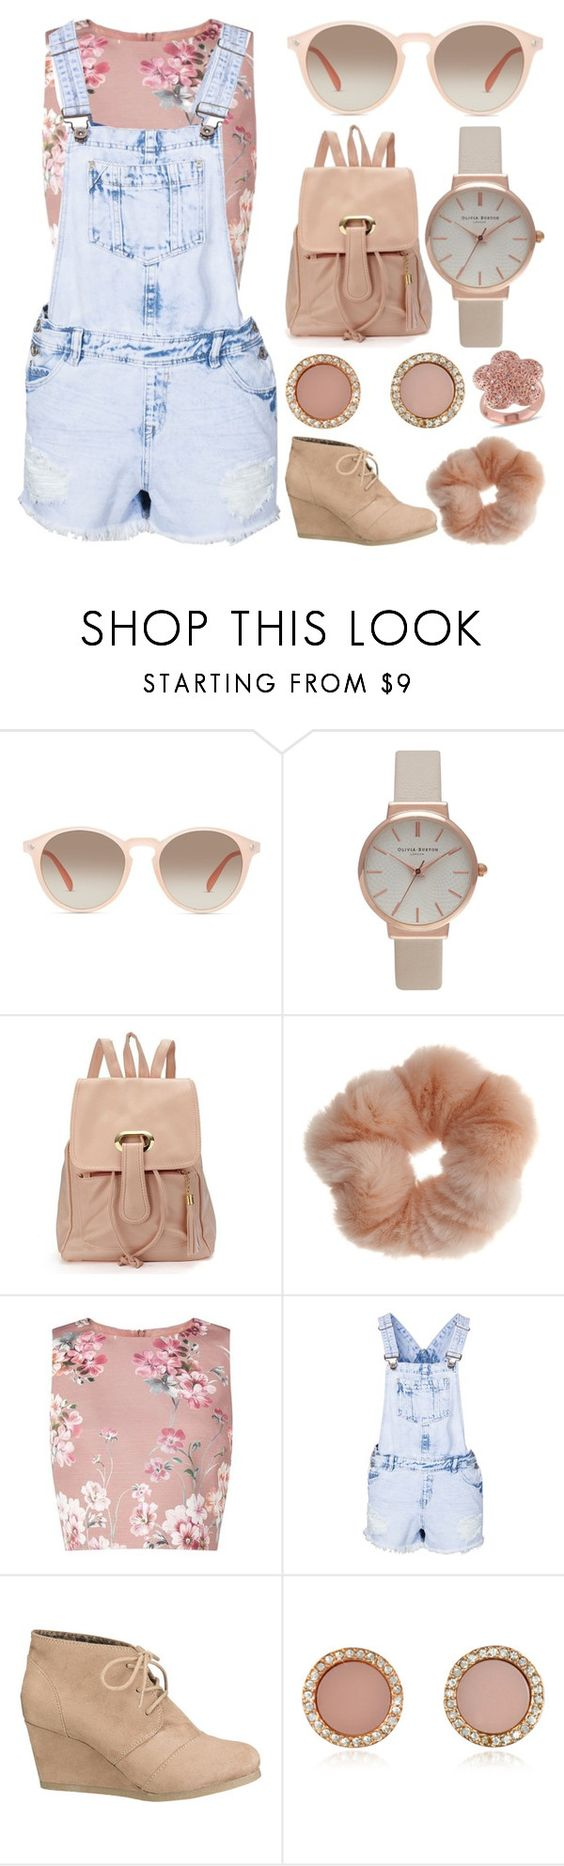 """Untitled 210"" by meaganmuffins on Polyvore featuring GlassesUSA, Olivia Burton, Miss Selfridge, New Look, maurices, Michael Kors and Amour"